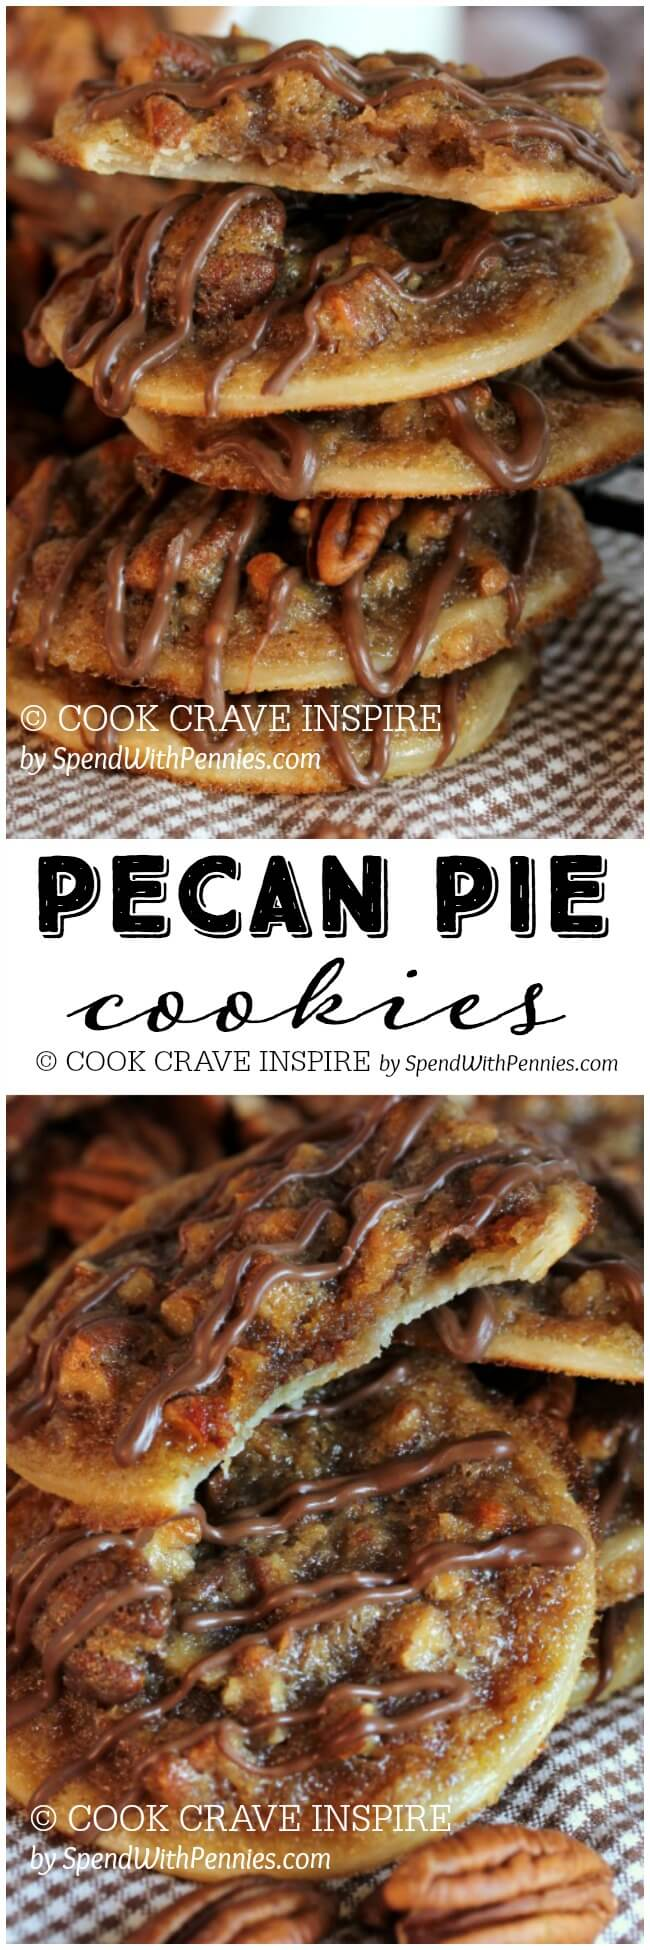 Pecan Pie Cookies! These have a deliciously sweet, caramel-y, nutty filling with a